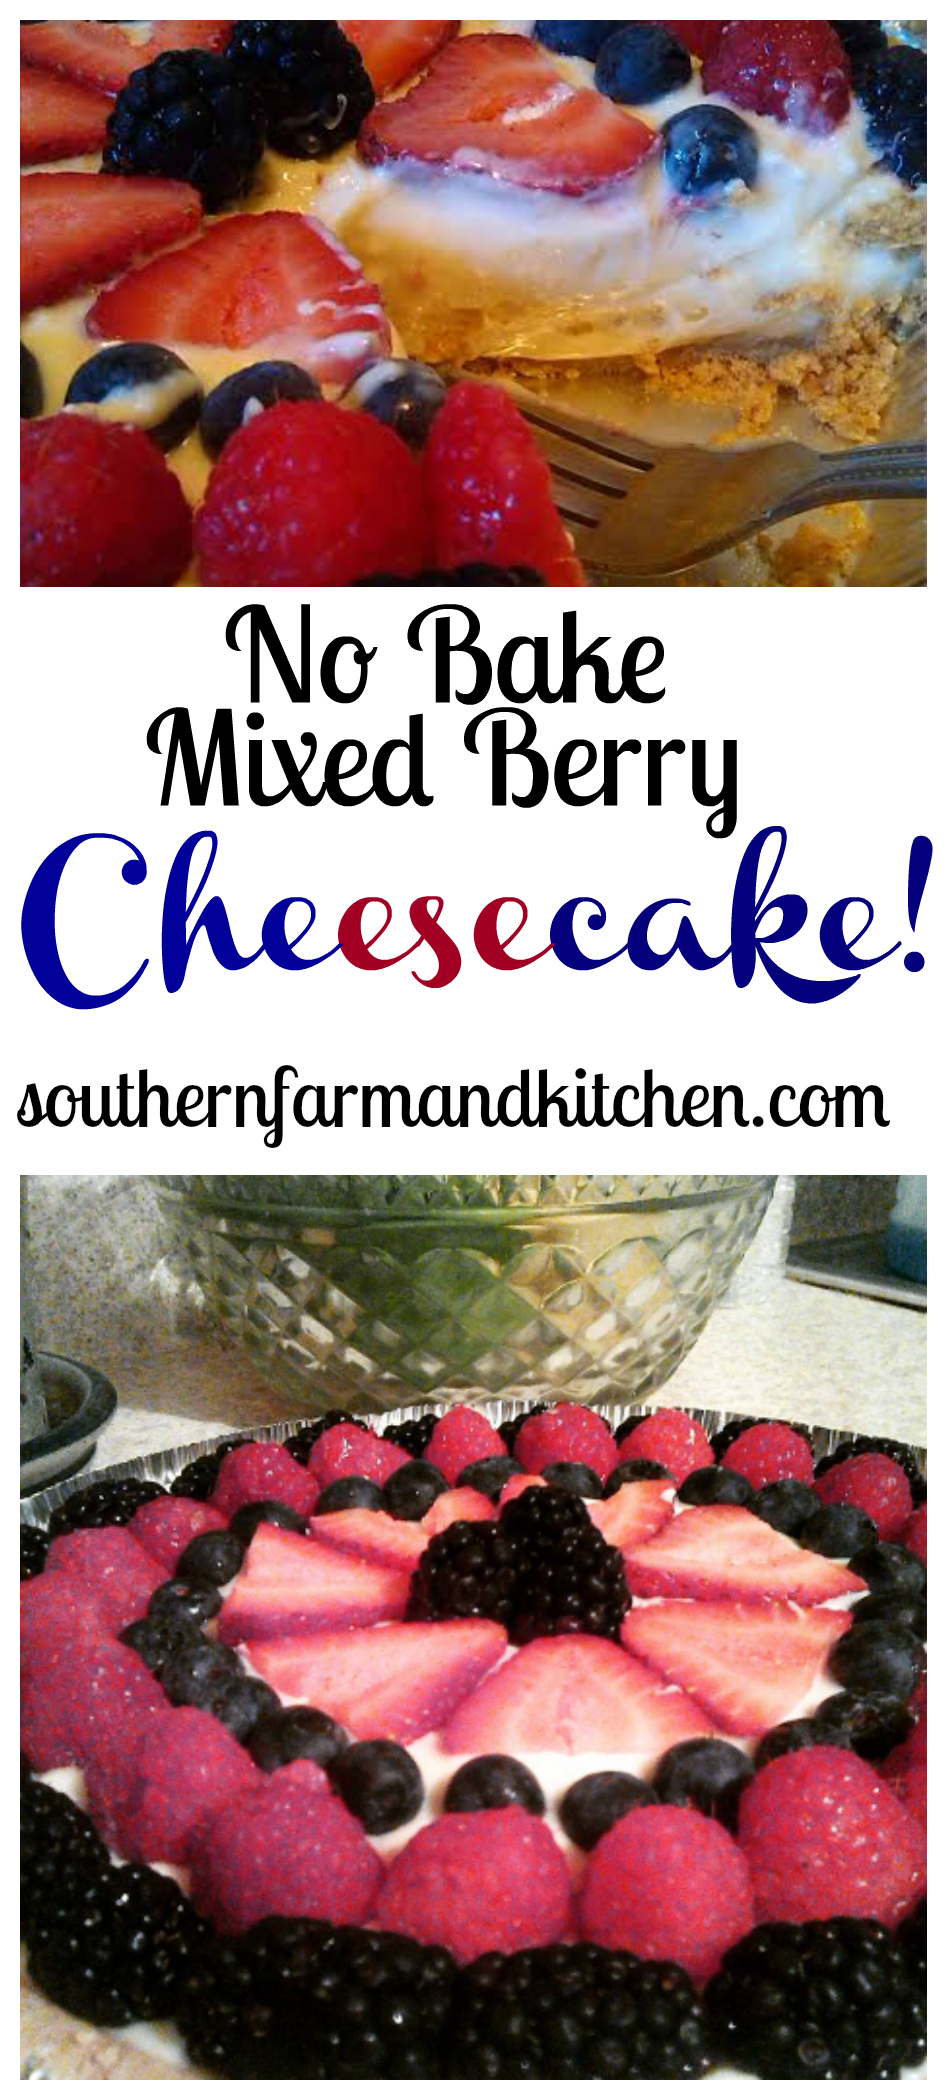 Cheesecake transparent mixed fruit. Berry cheesecakes delicious food